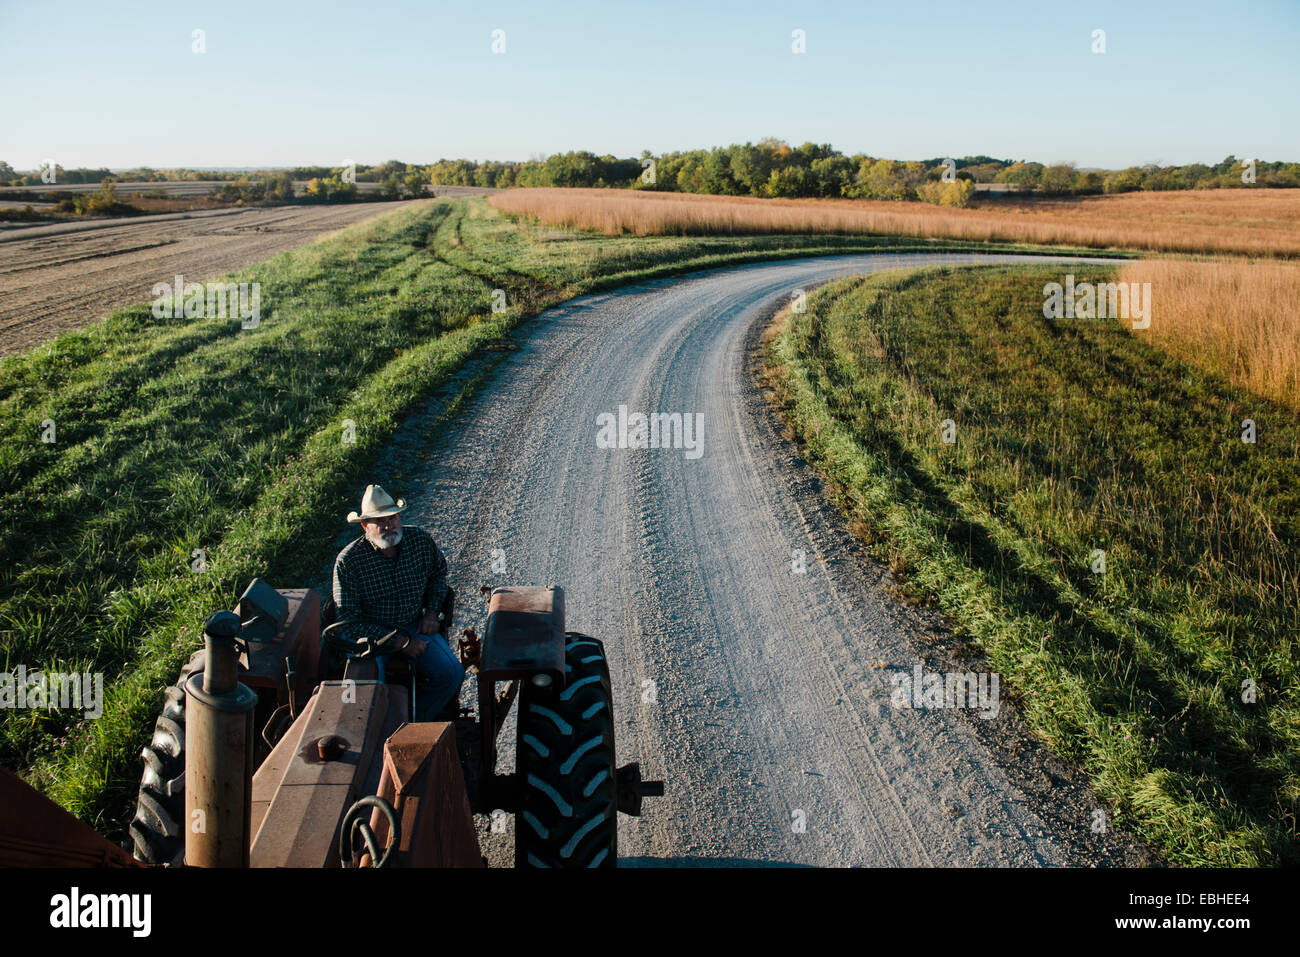 High angle view of senior male farmer driving tractor on rural road, Plattsburg, Missouri, USA - Stock Image